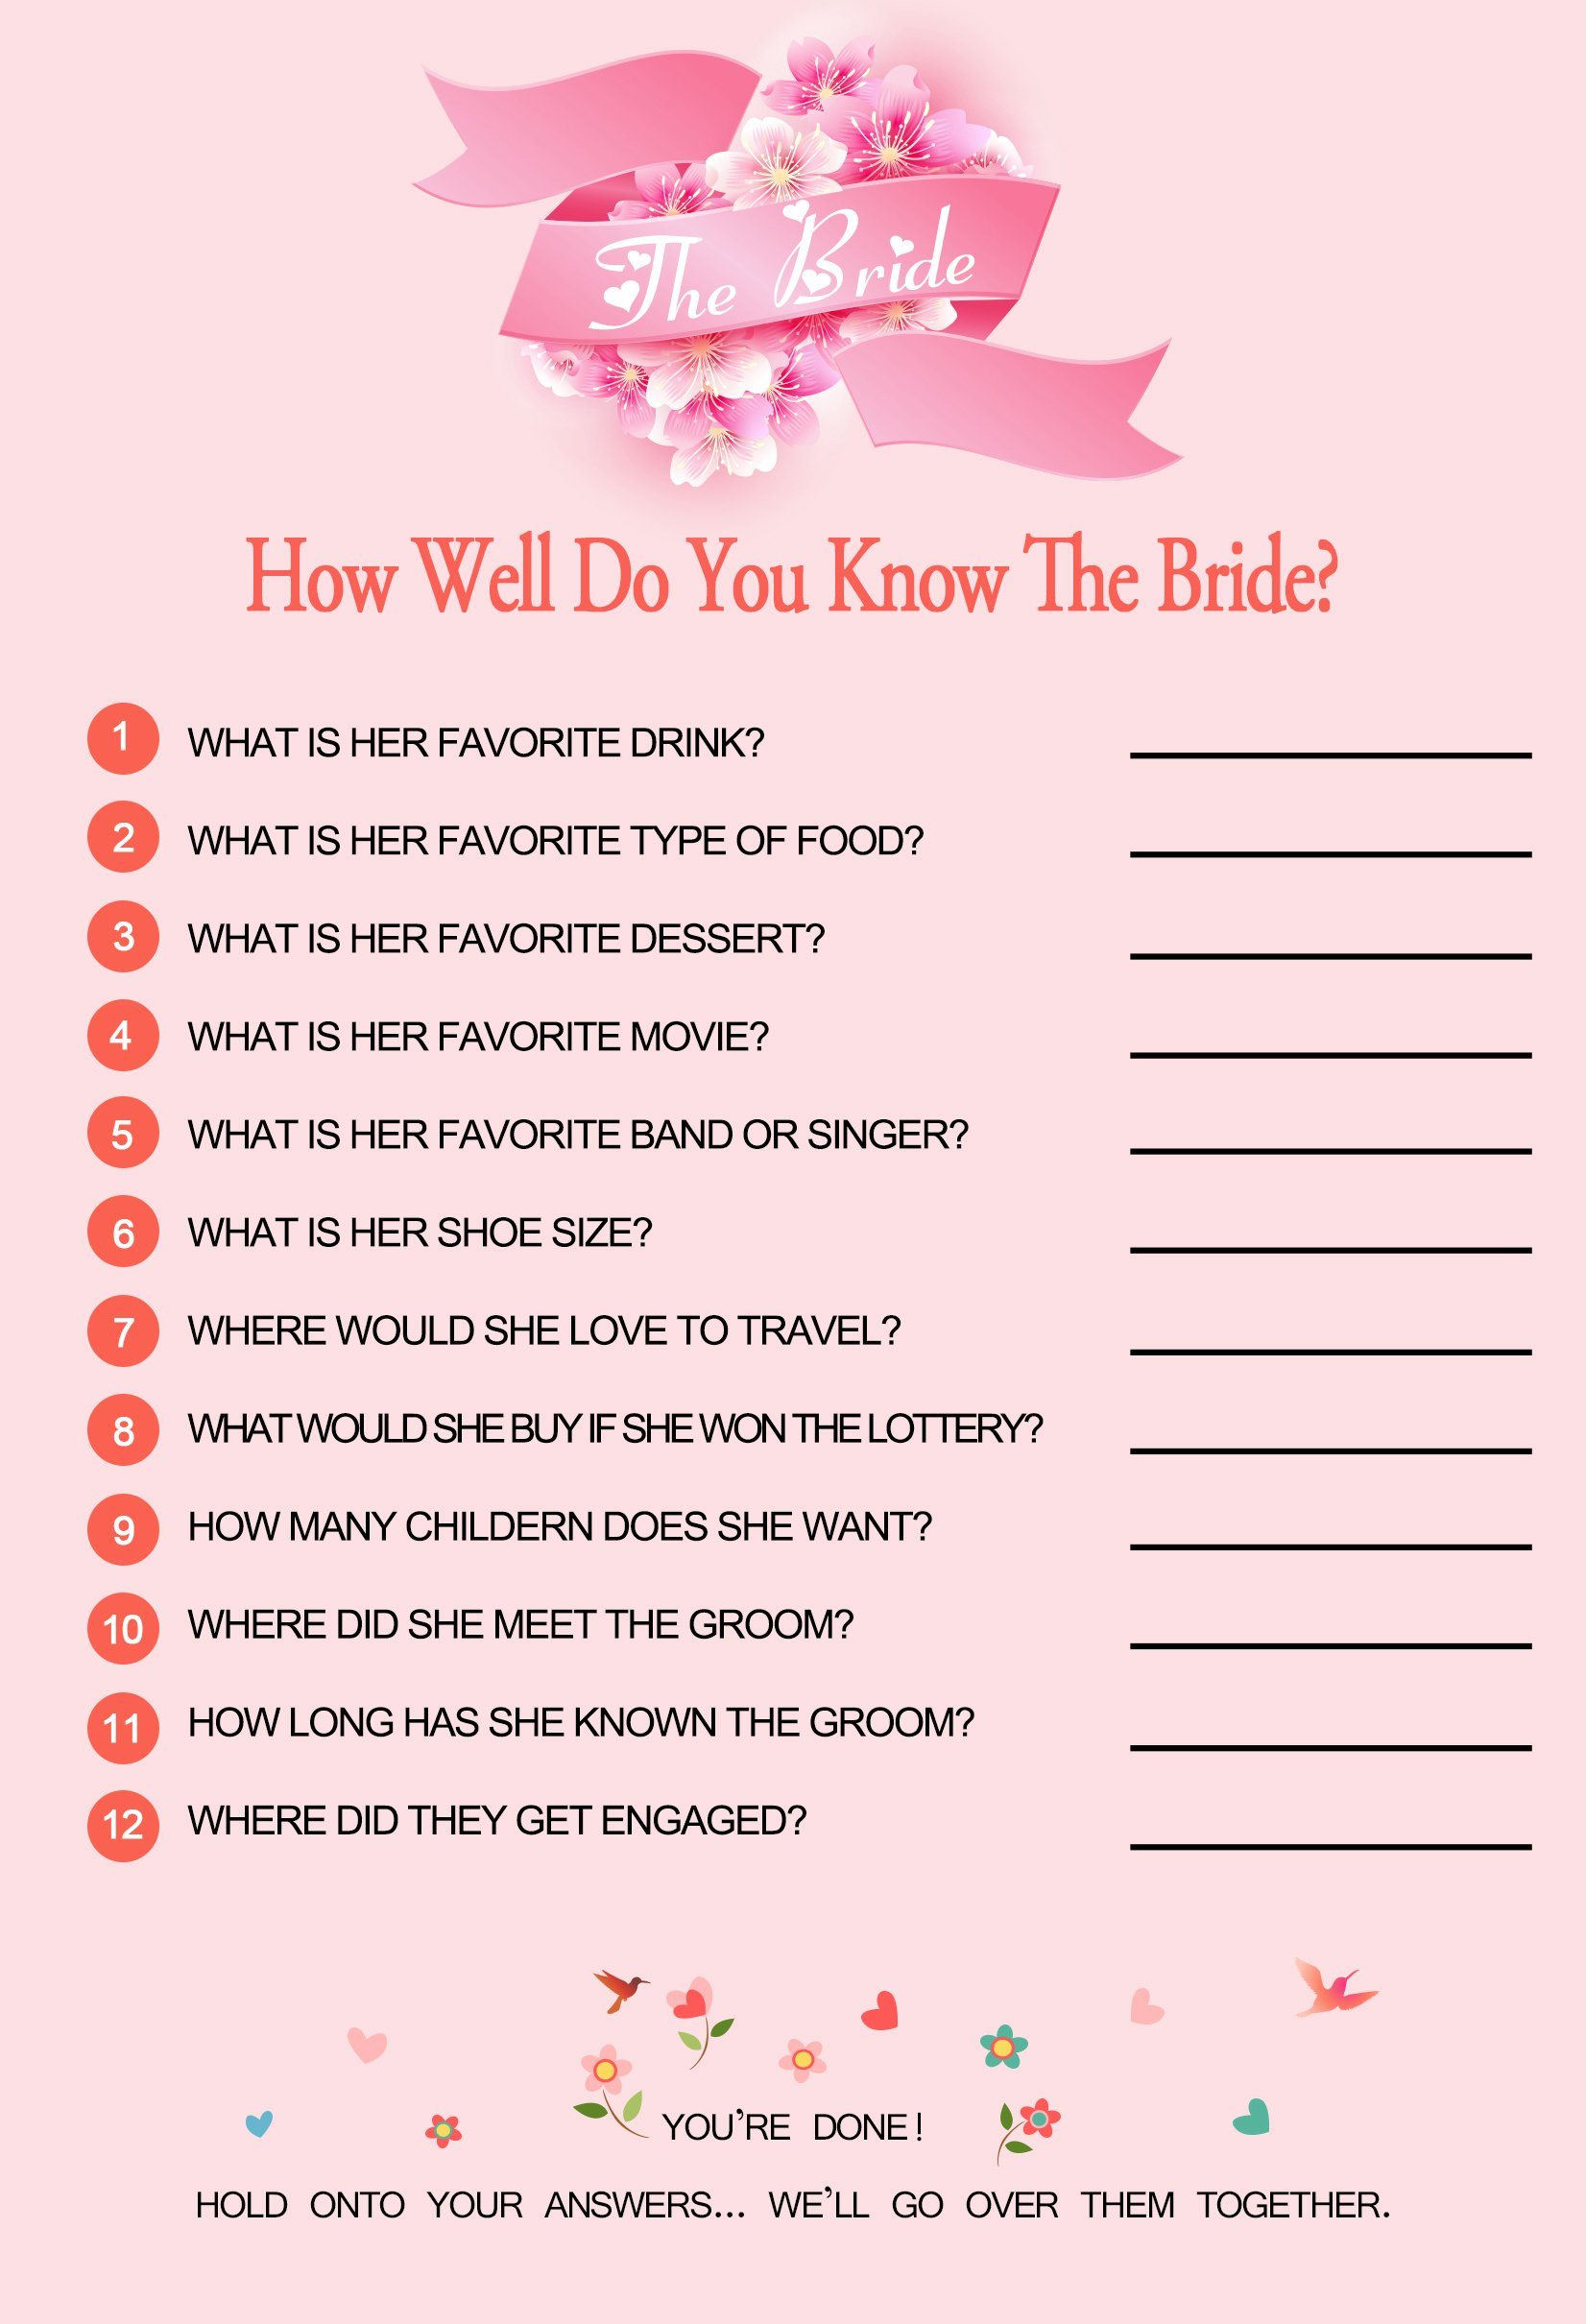 E-TING How Well Do You Know The Bride (45 Sheets) - Bridal Shower And Wedding Anniversary Games